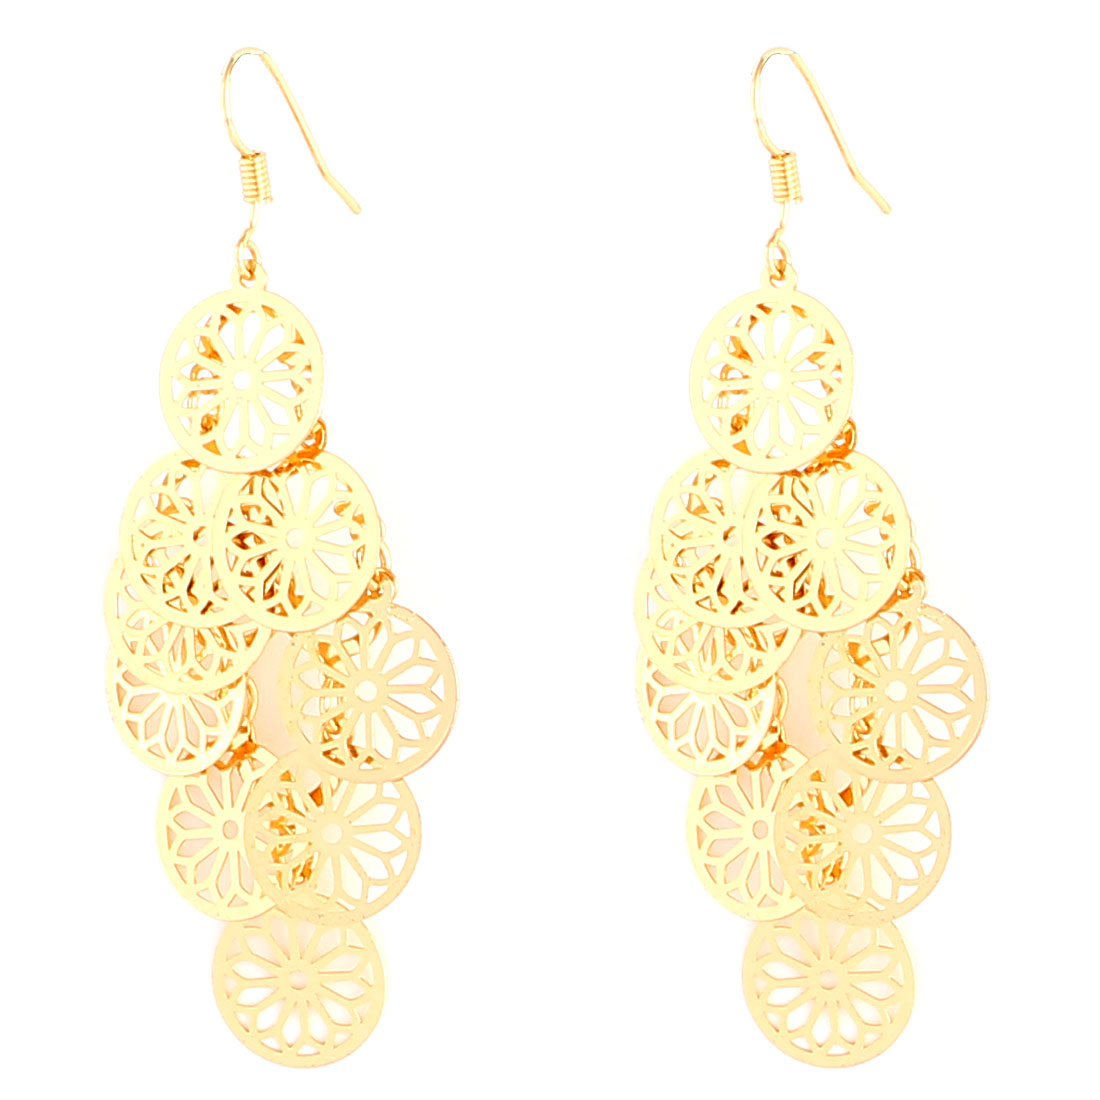 Woman Jewelry Round Hollow Pendant Fish Hook Dangle Earrings Gold Tone Pair